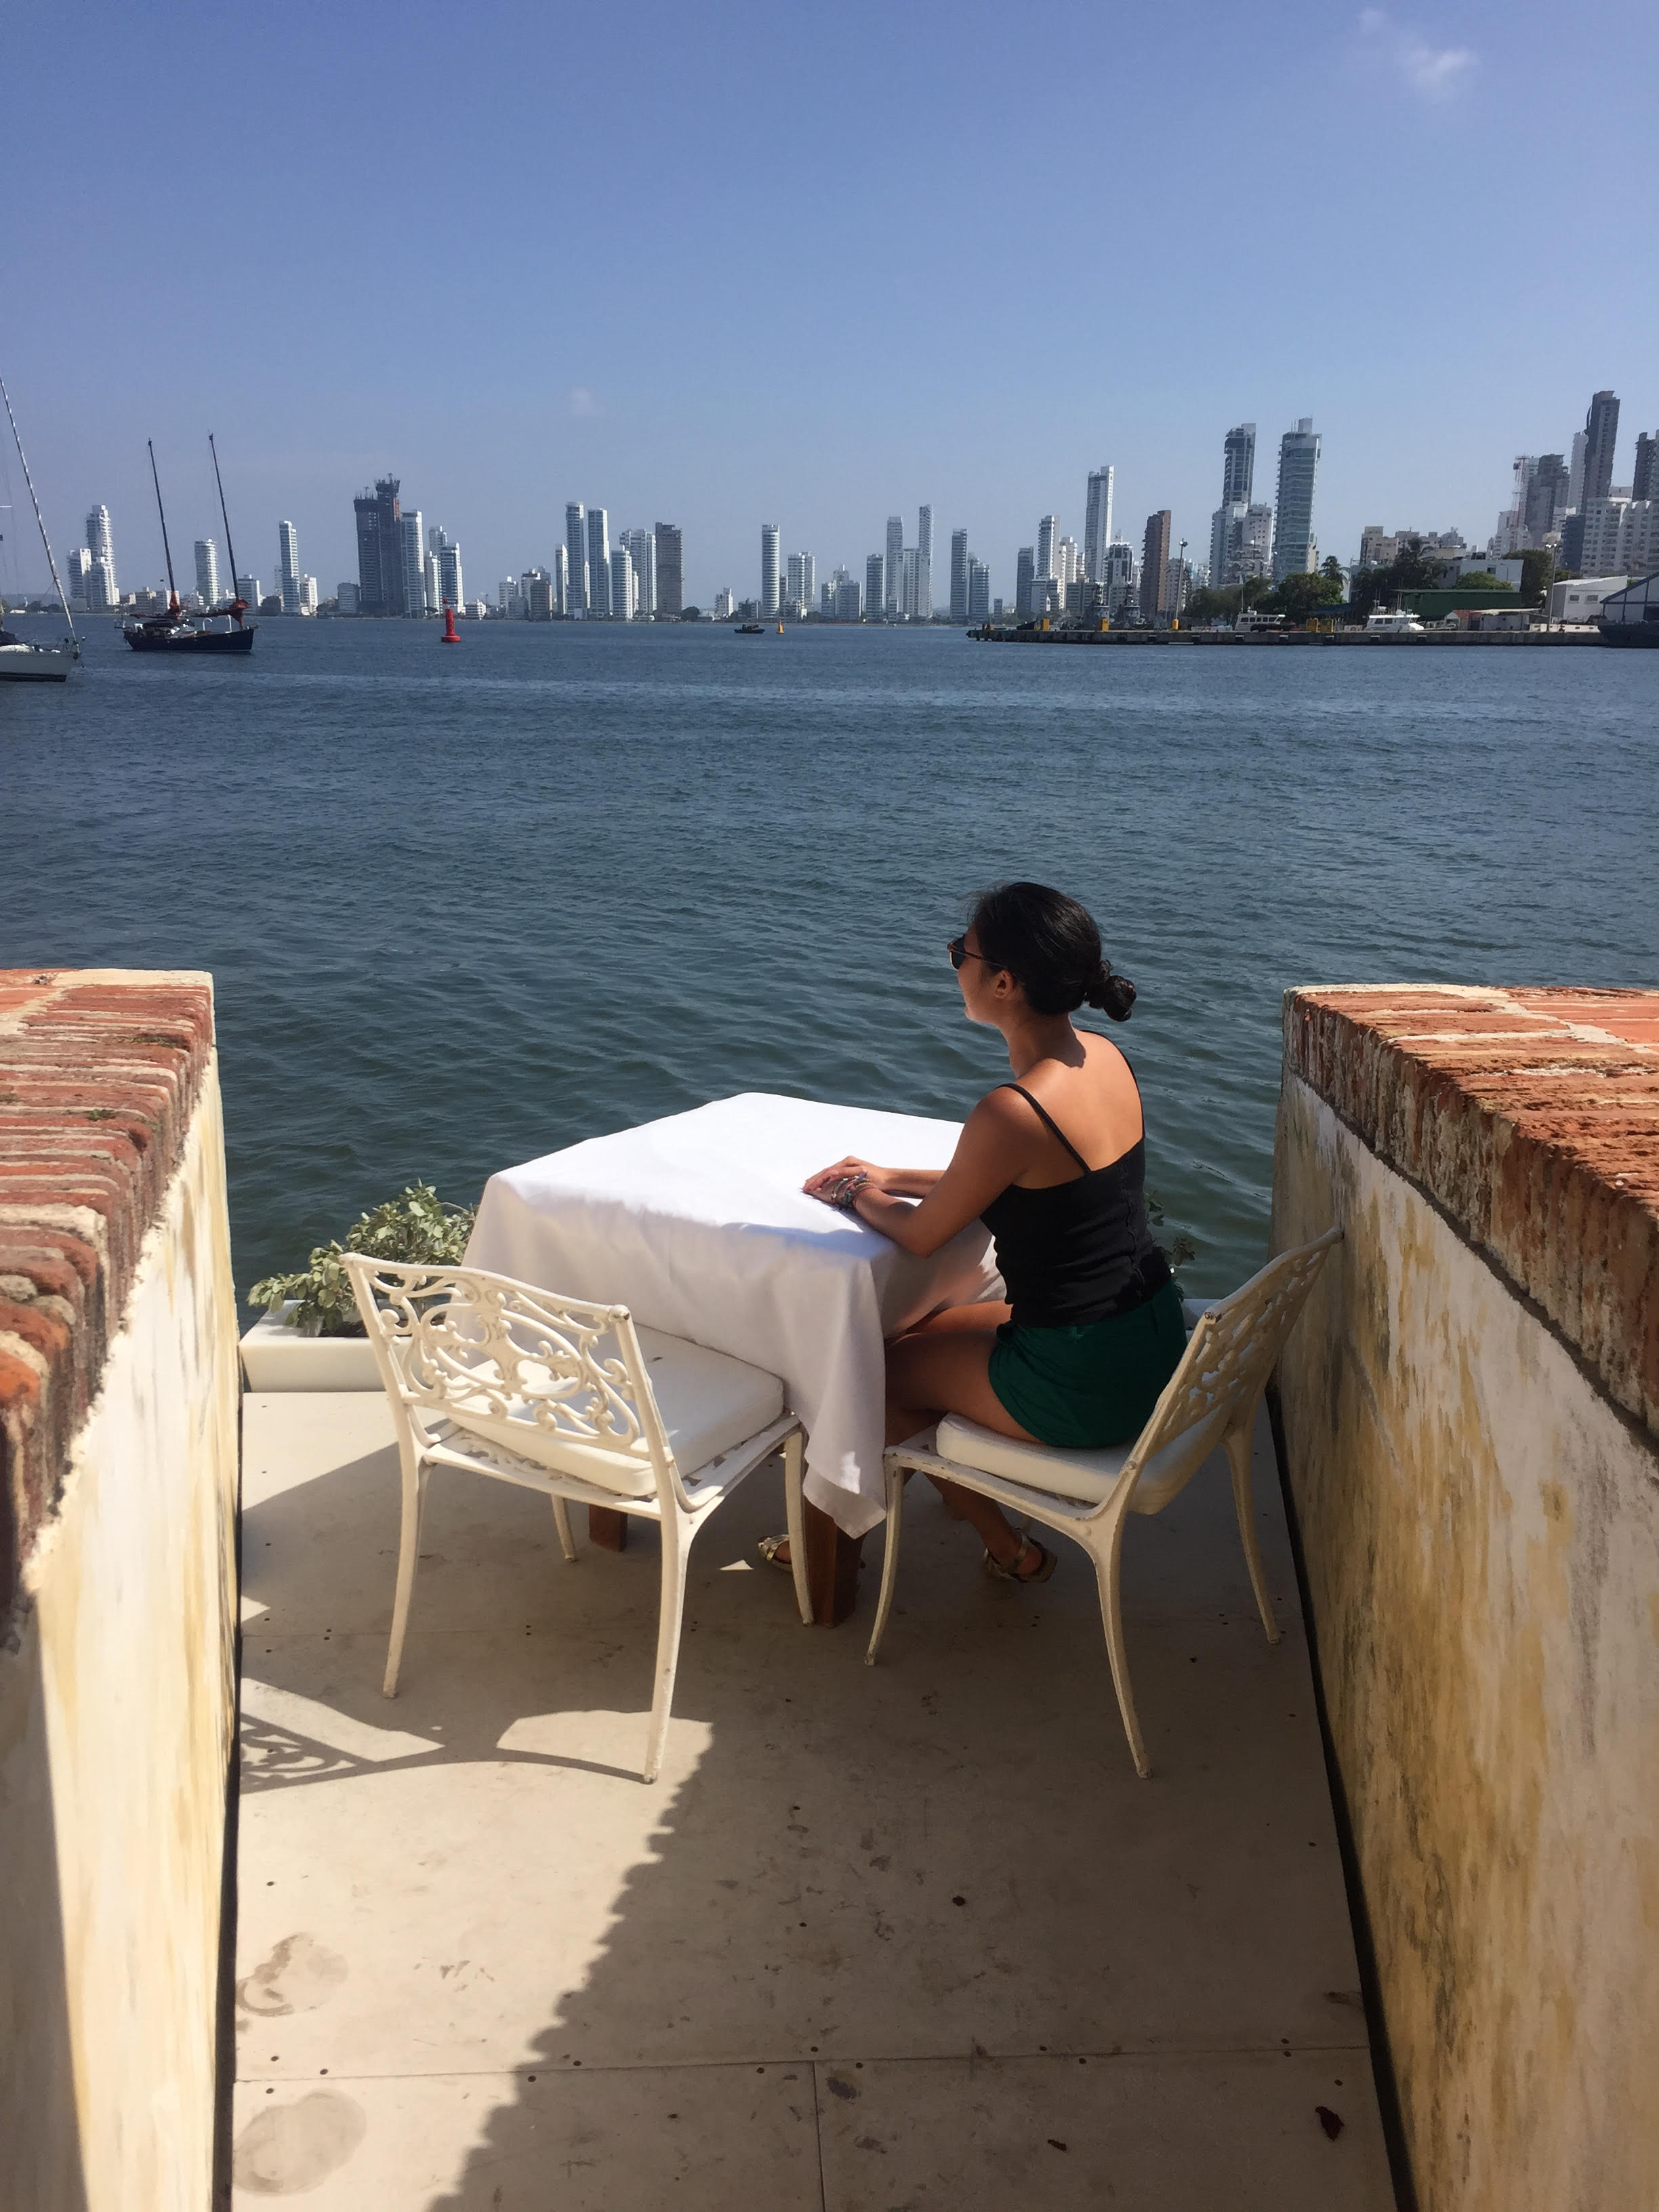 A secluded table with a view at Club de Pesca.